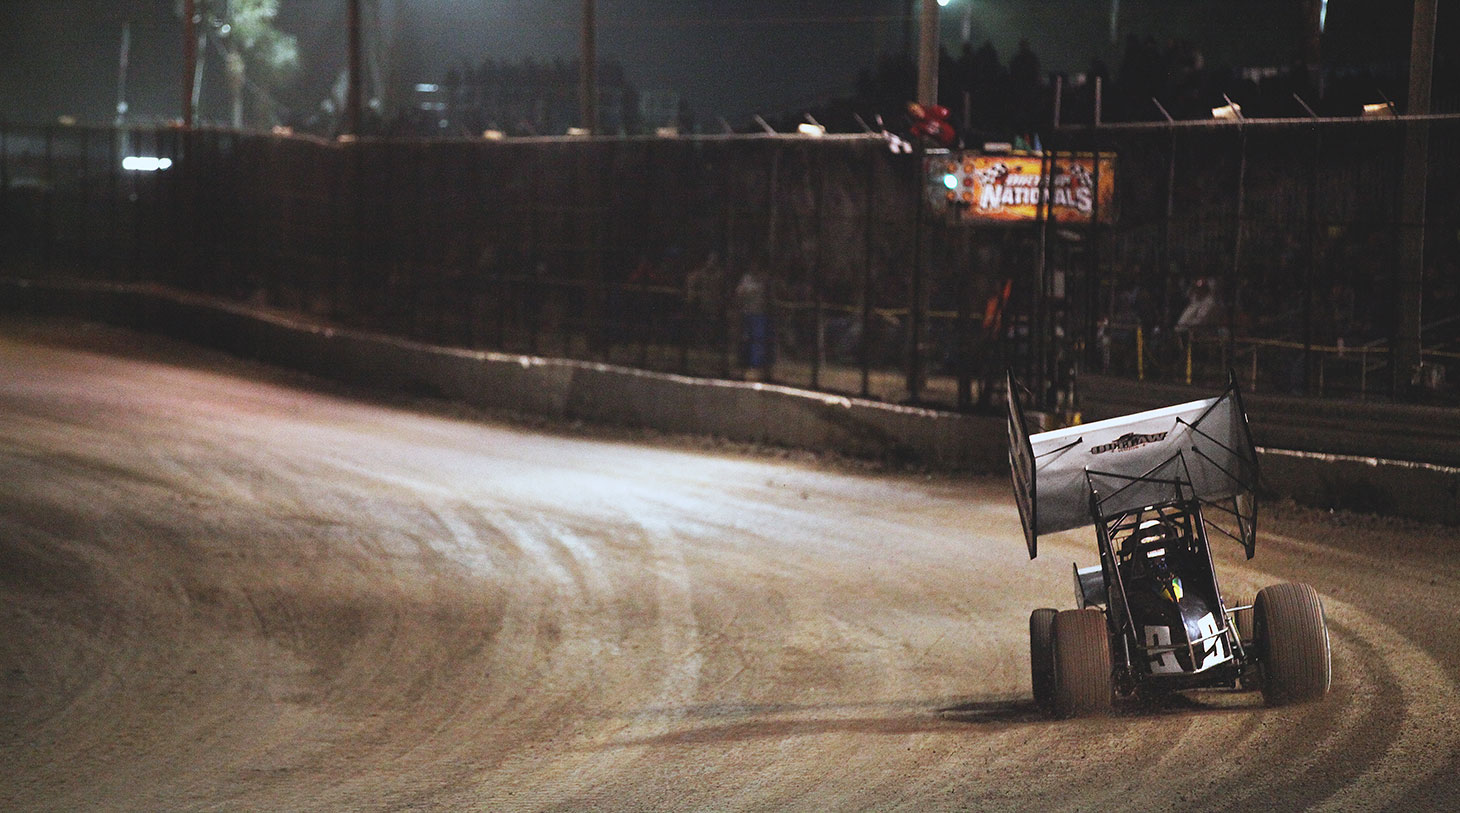 Daryn Pittman coming out of turn 4 at Volusia Speedway in Florida. | Photography: Jeffrey Turford